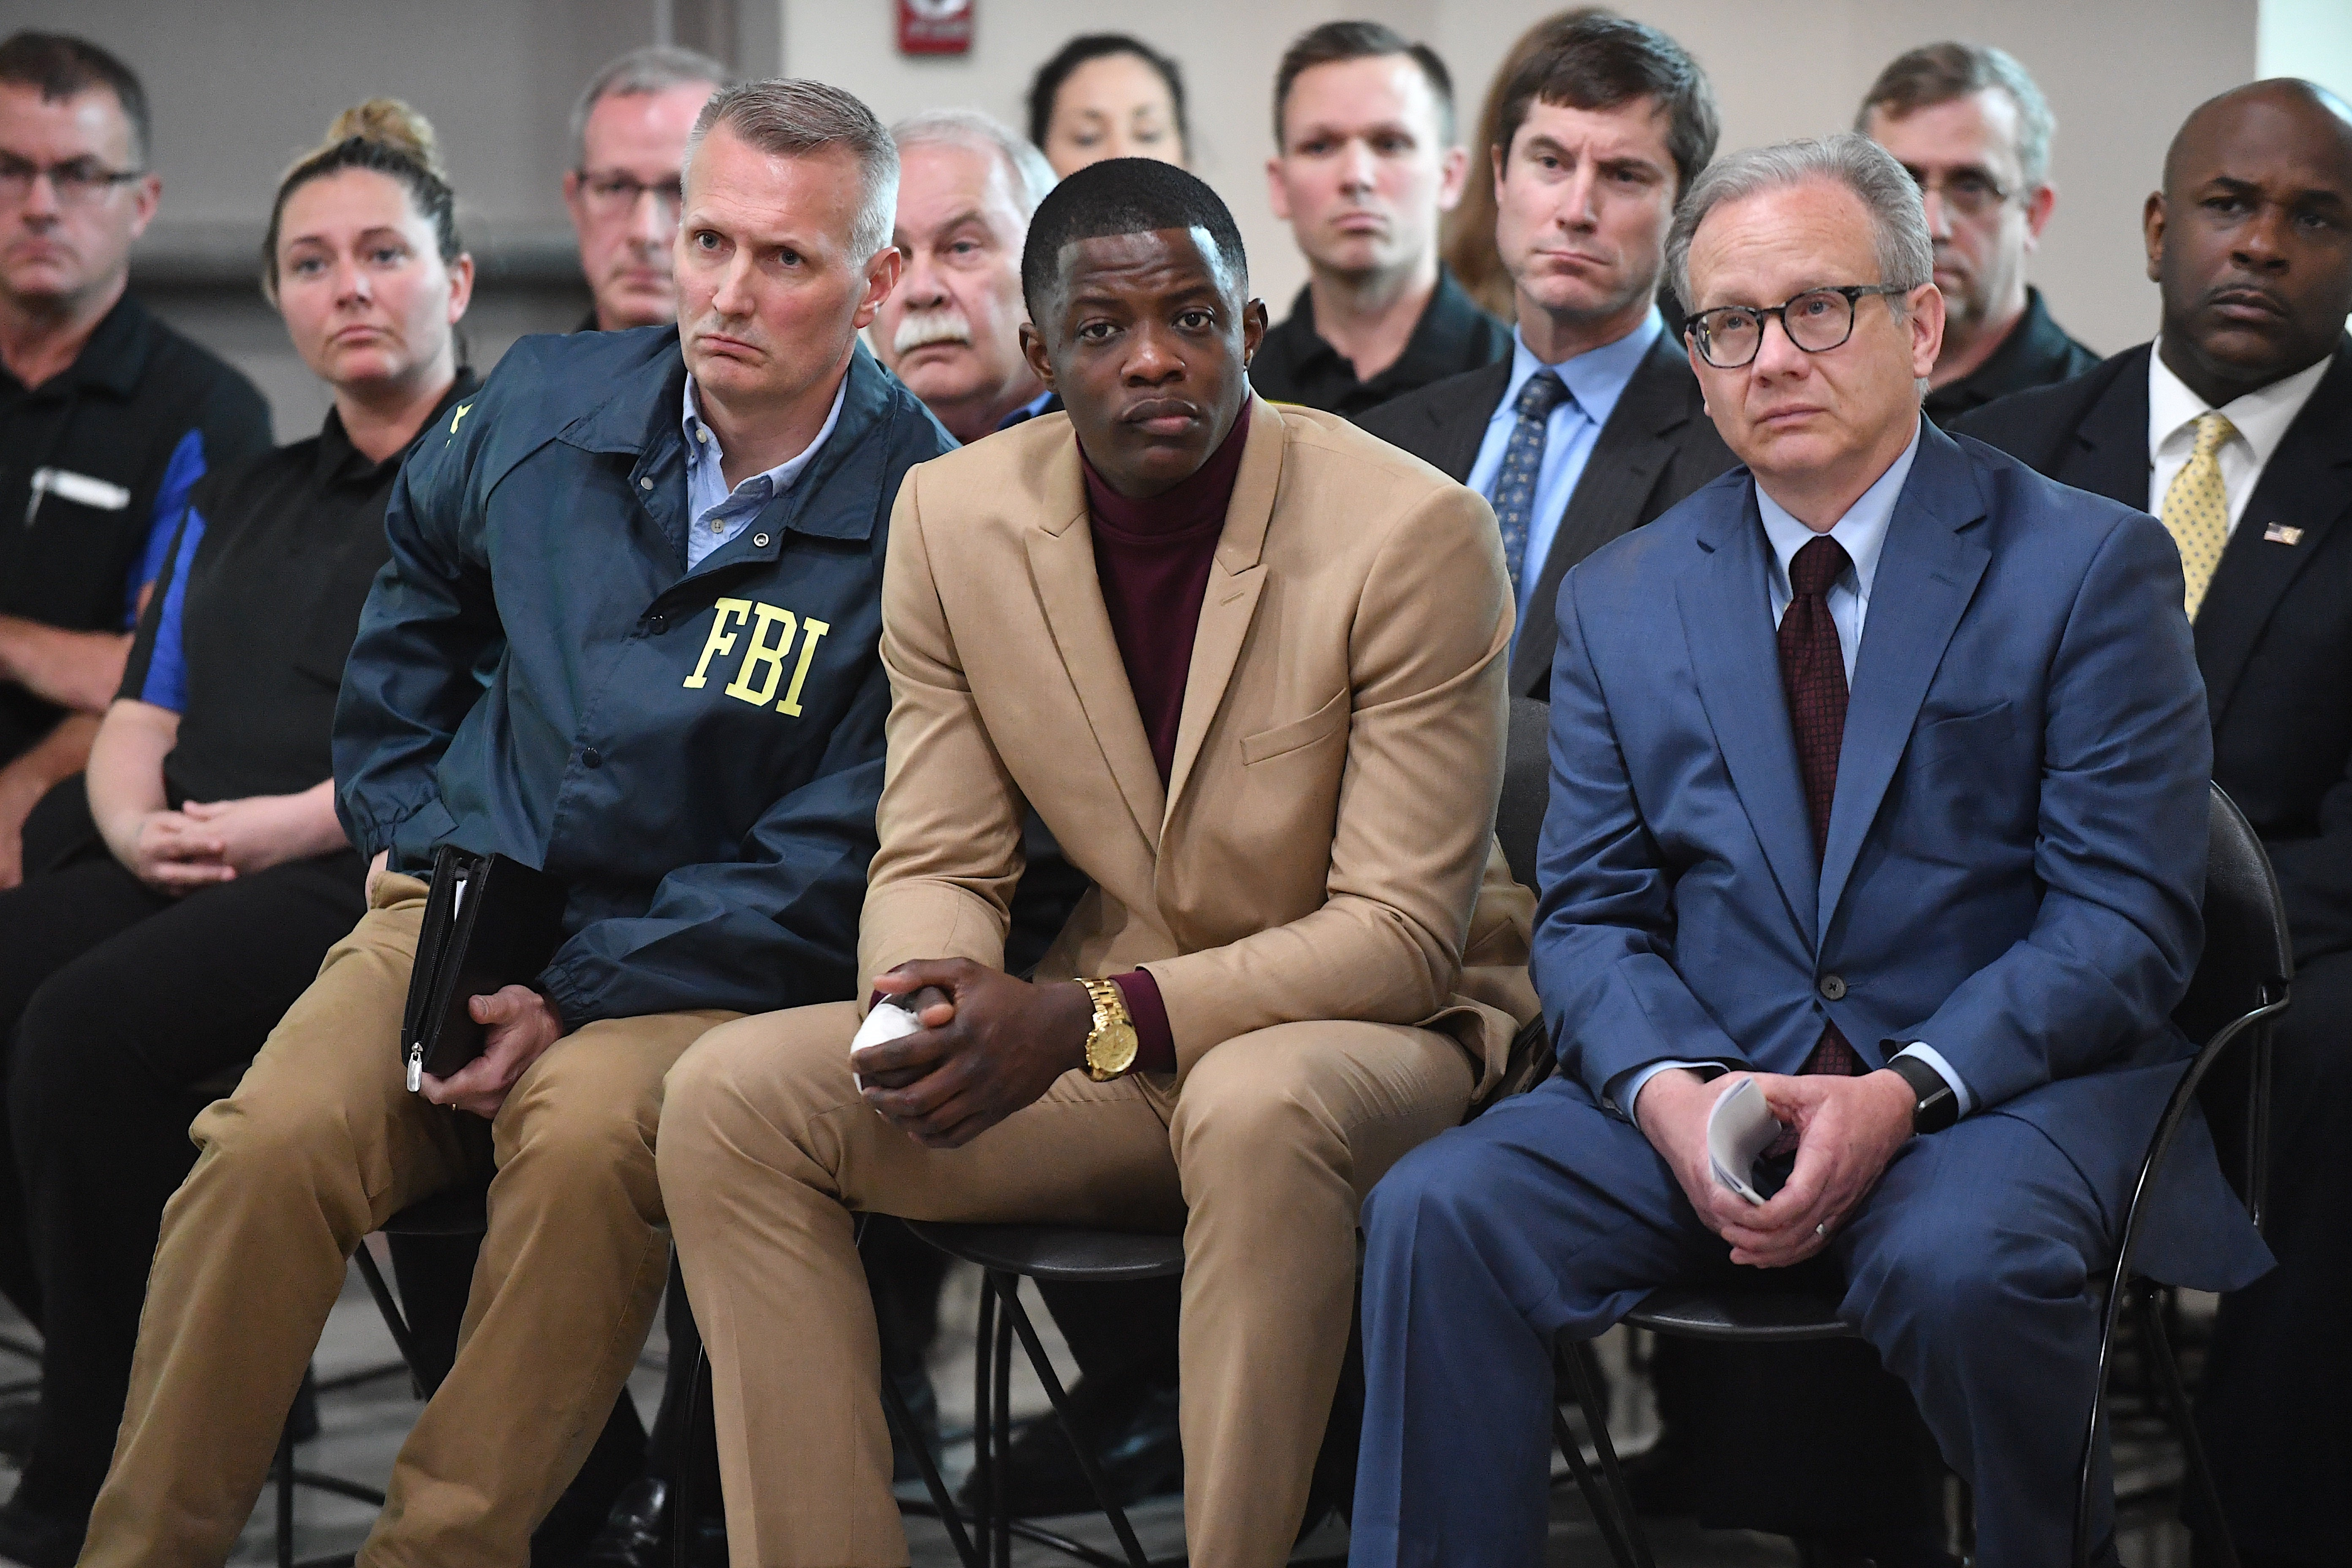 James Shaw Jr. Raises More Than $165,000 For Waffle House Shooting Victims